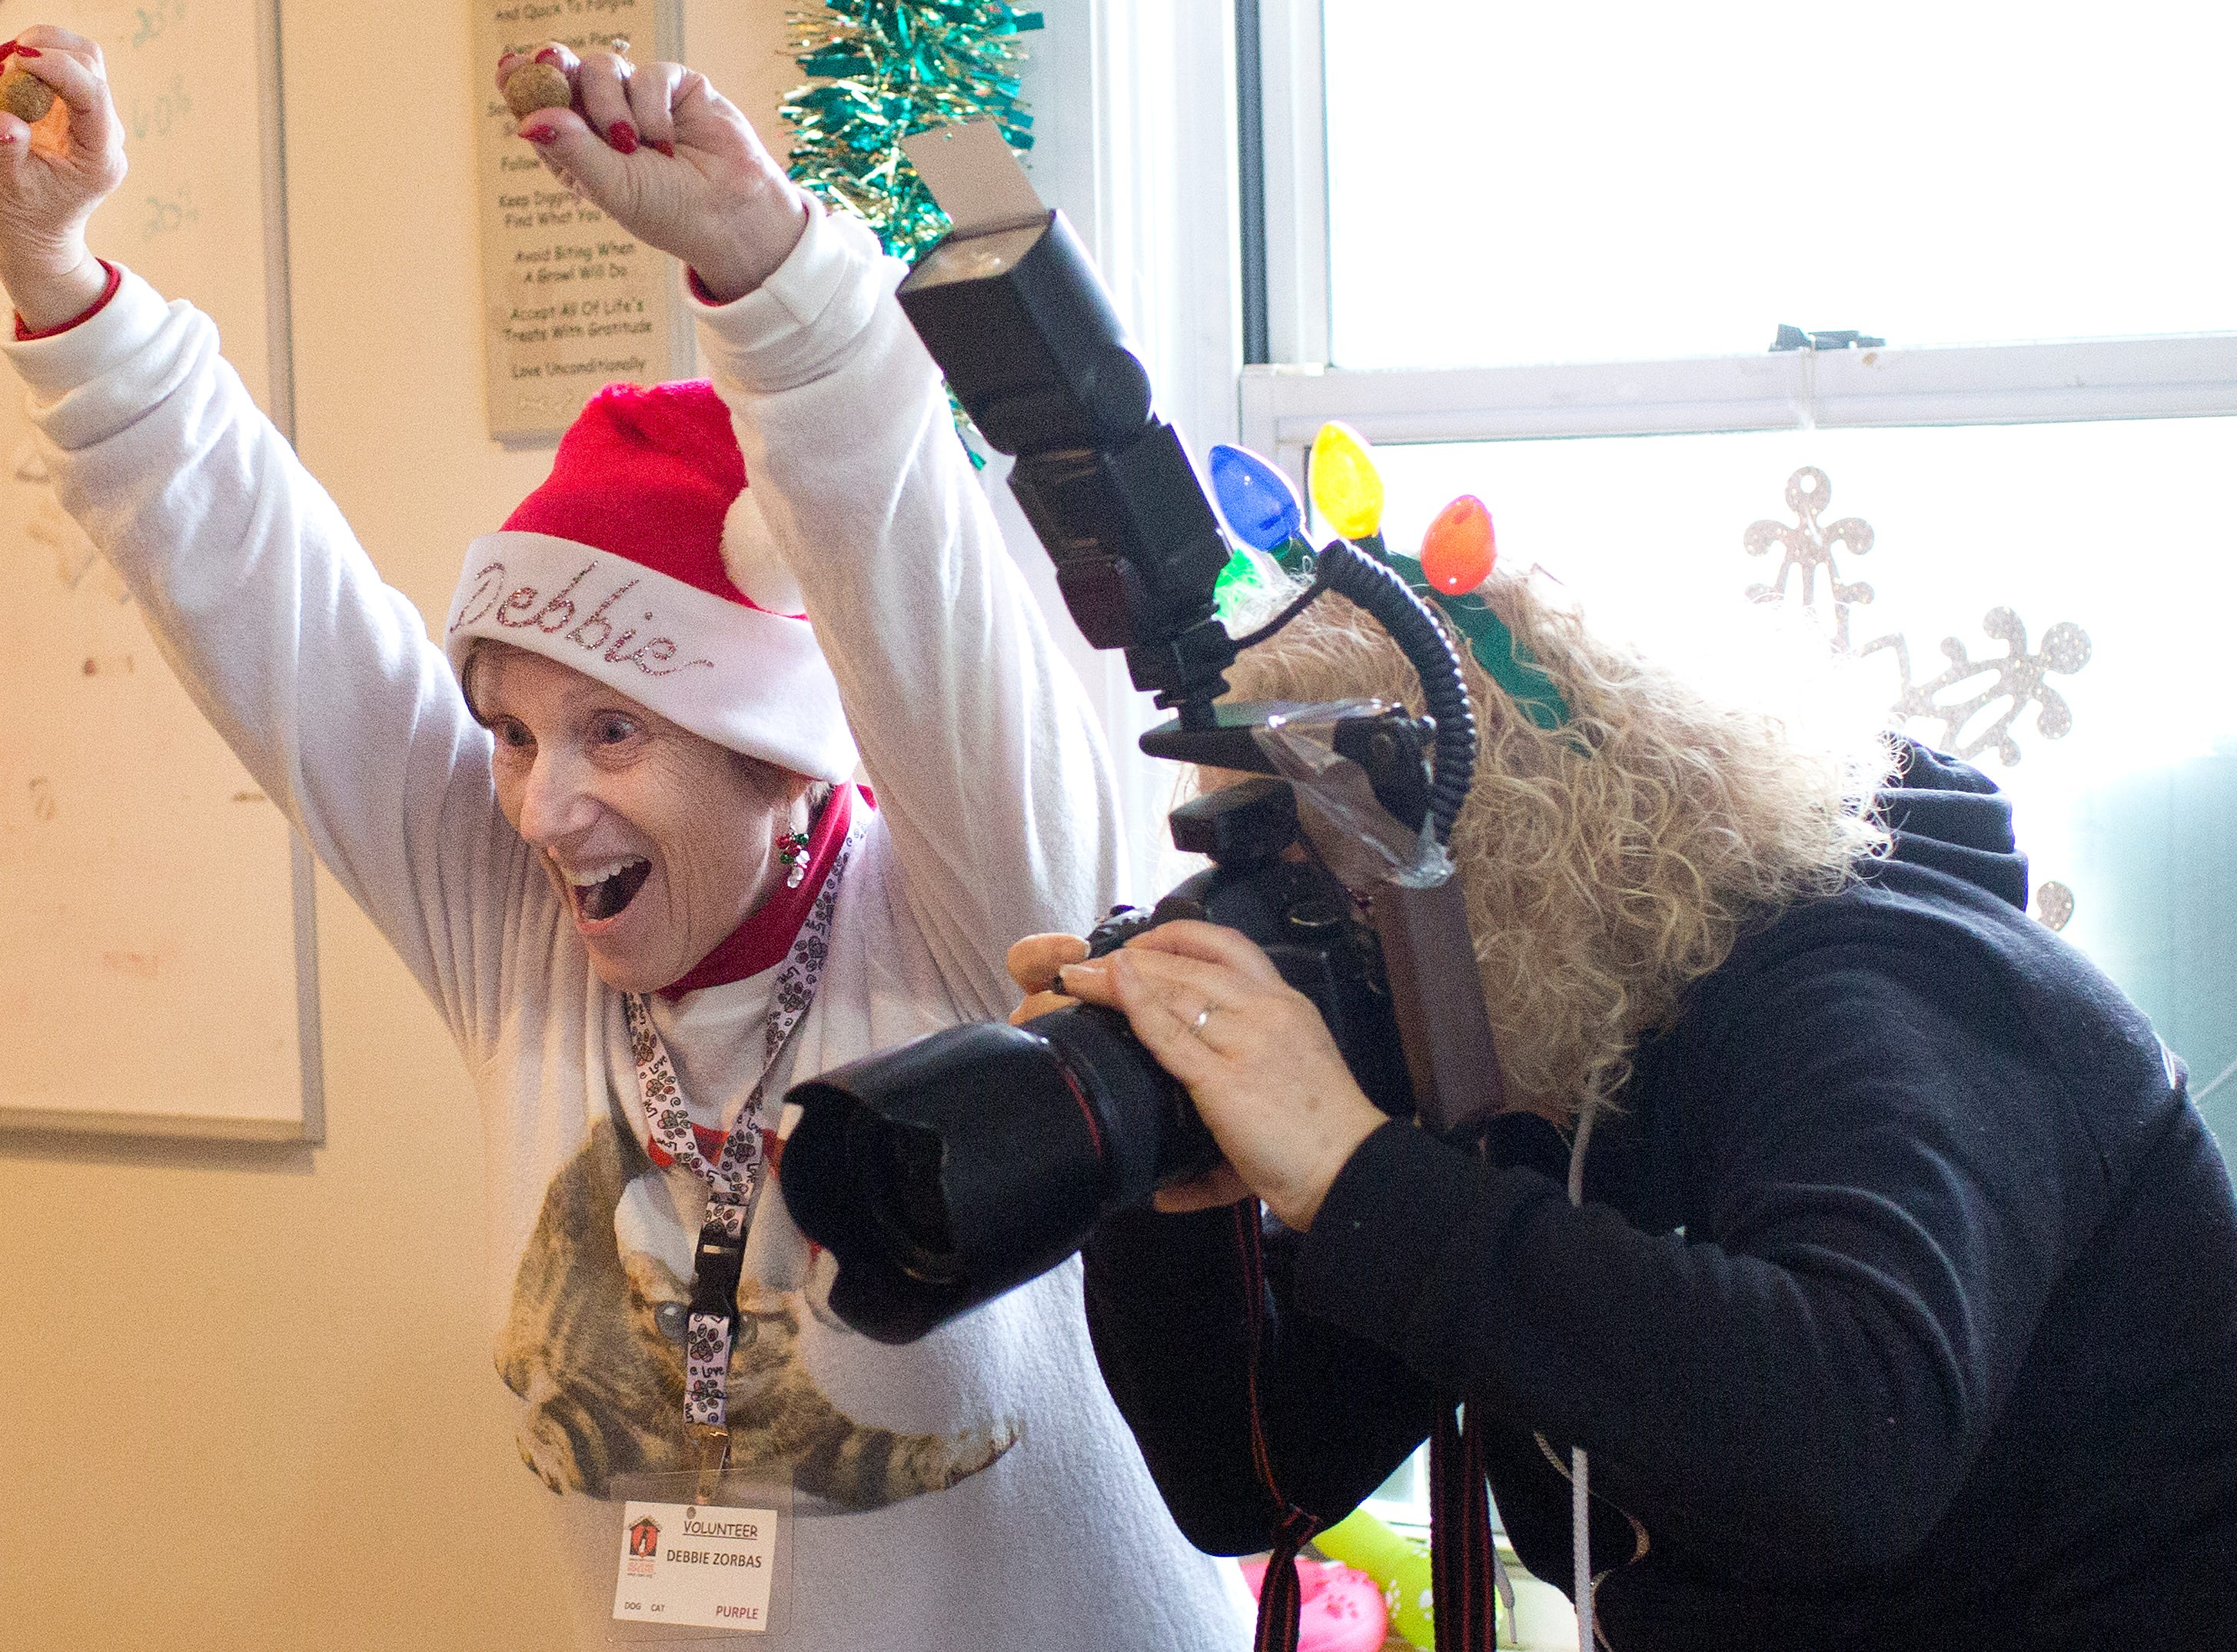 RBARI volunteer Debbie Zorbas (left) tries to catch the attention of pets for photographer Lyn Ofrane during the Santa Paws photo session for pets at the Rampo-Bergen Animal Refuge Inc. in Oakland on Saturday, Dec. 1, 2018. Sponsored by Allstate, all proceeds from the photo sessions go directly towards the care of animals rescued by RBARI.